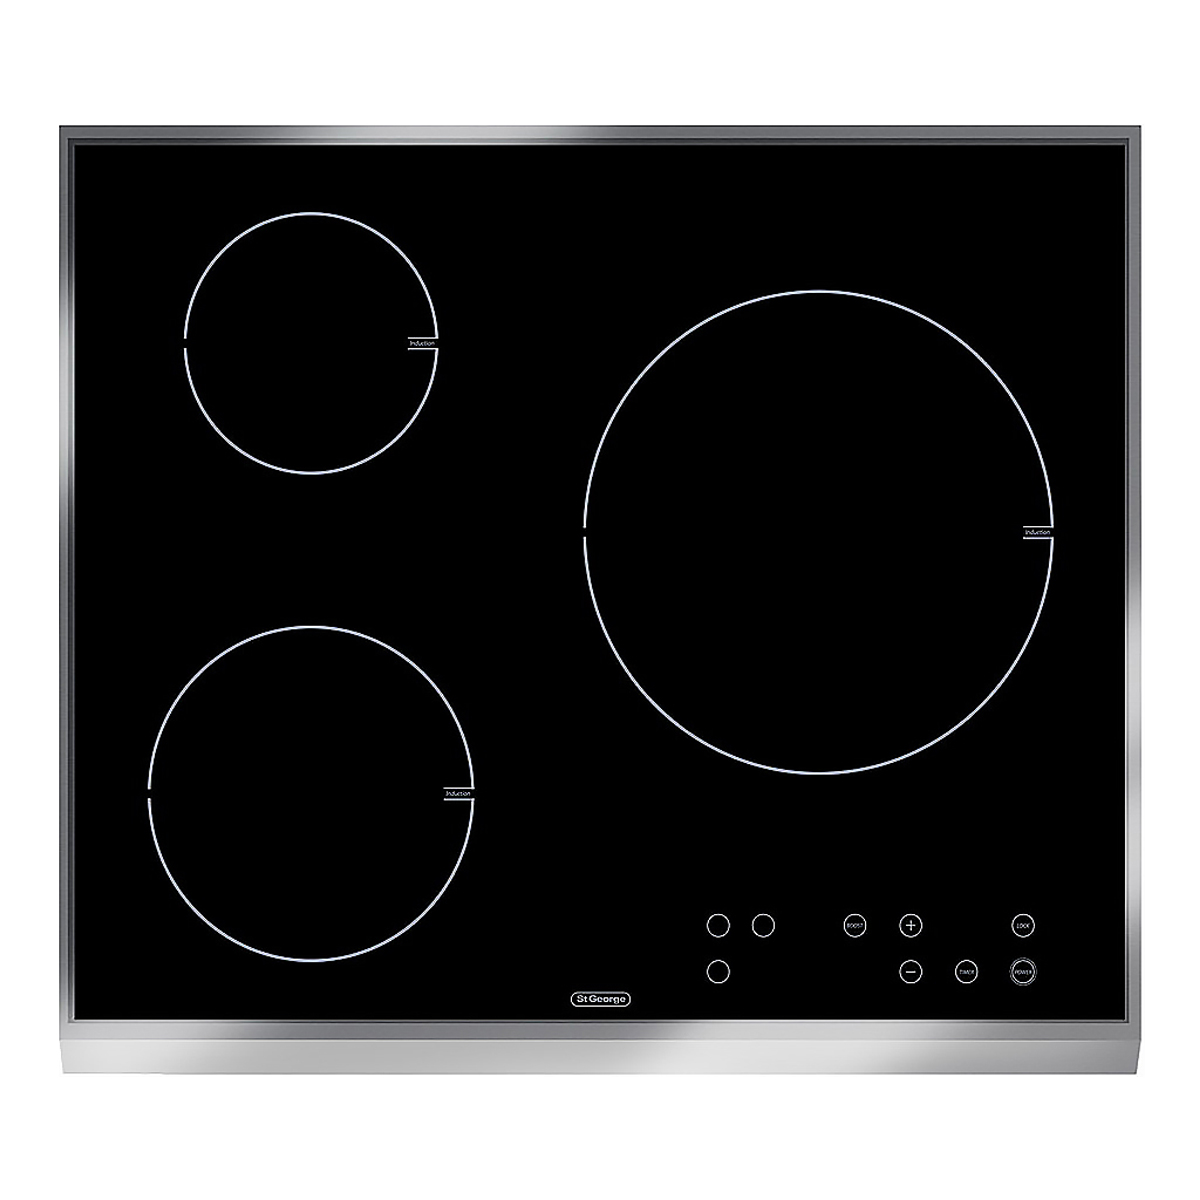 St George 5536300 Induction Cooktop